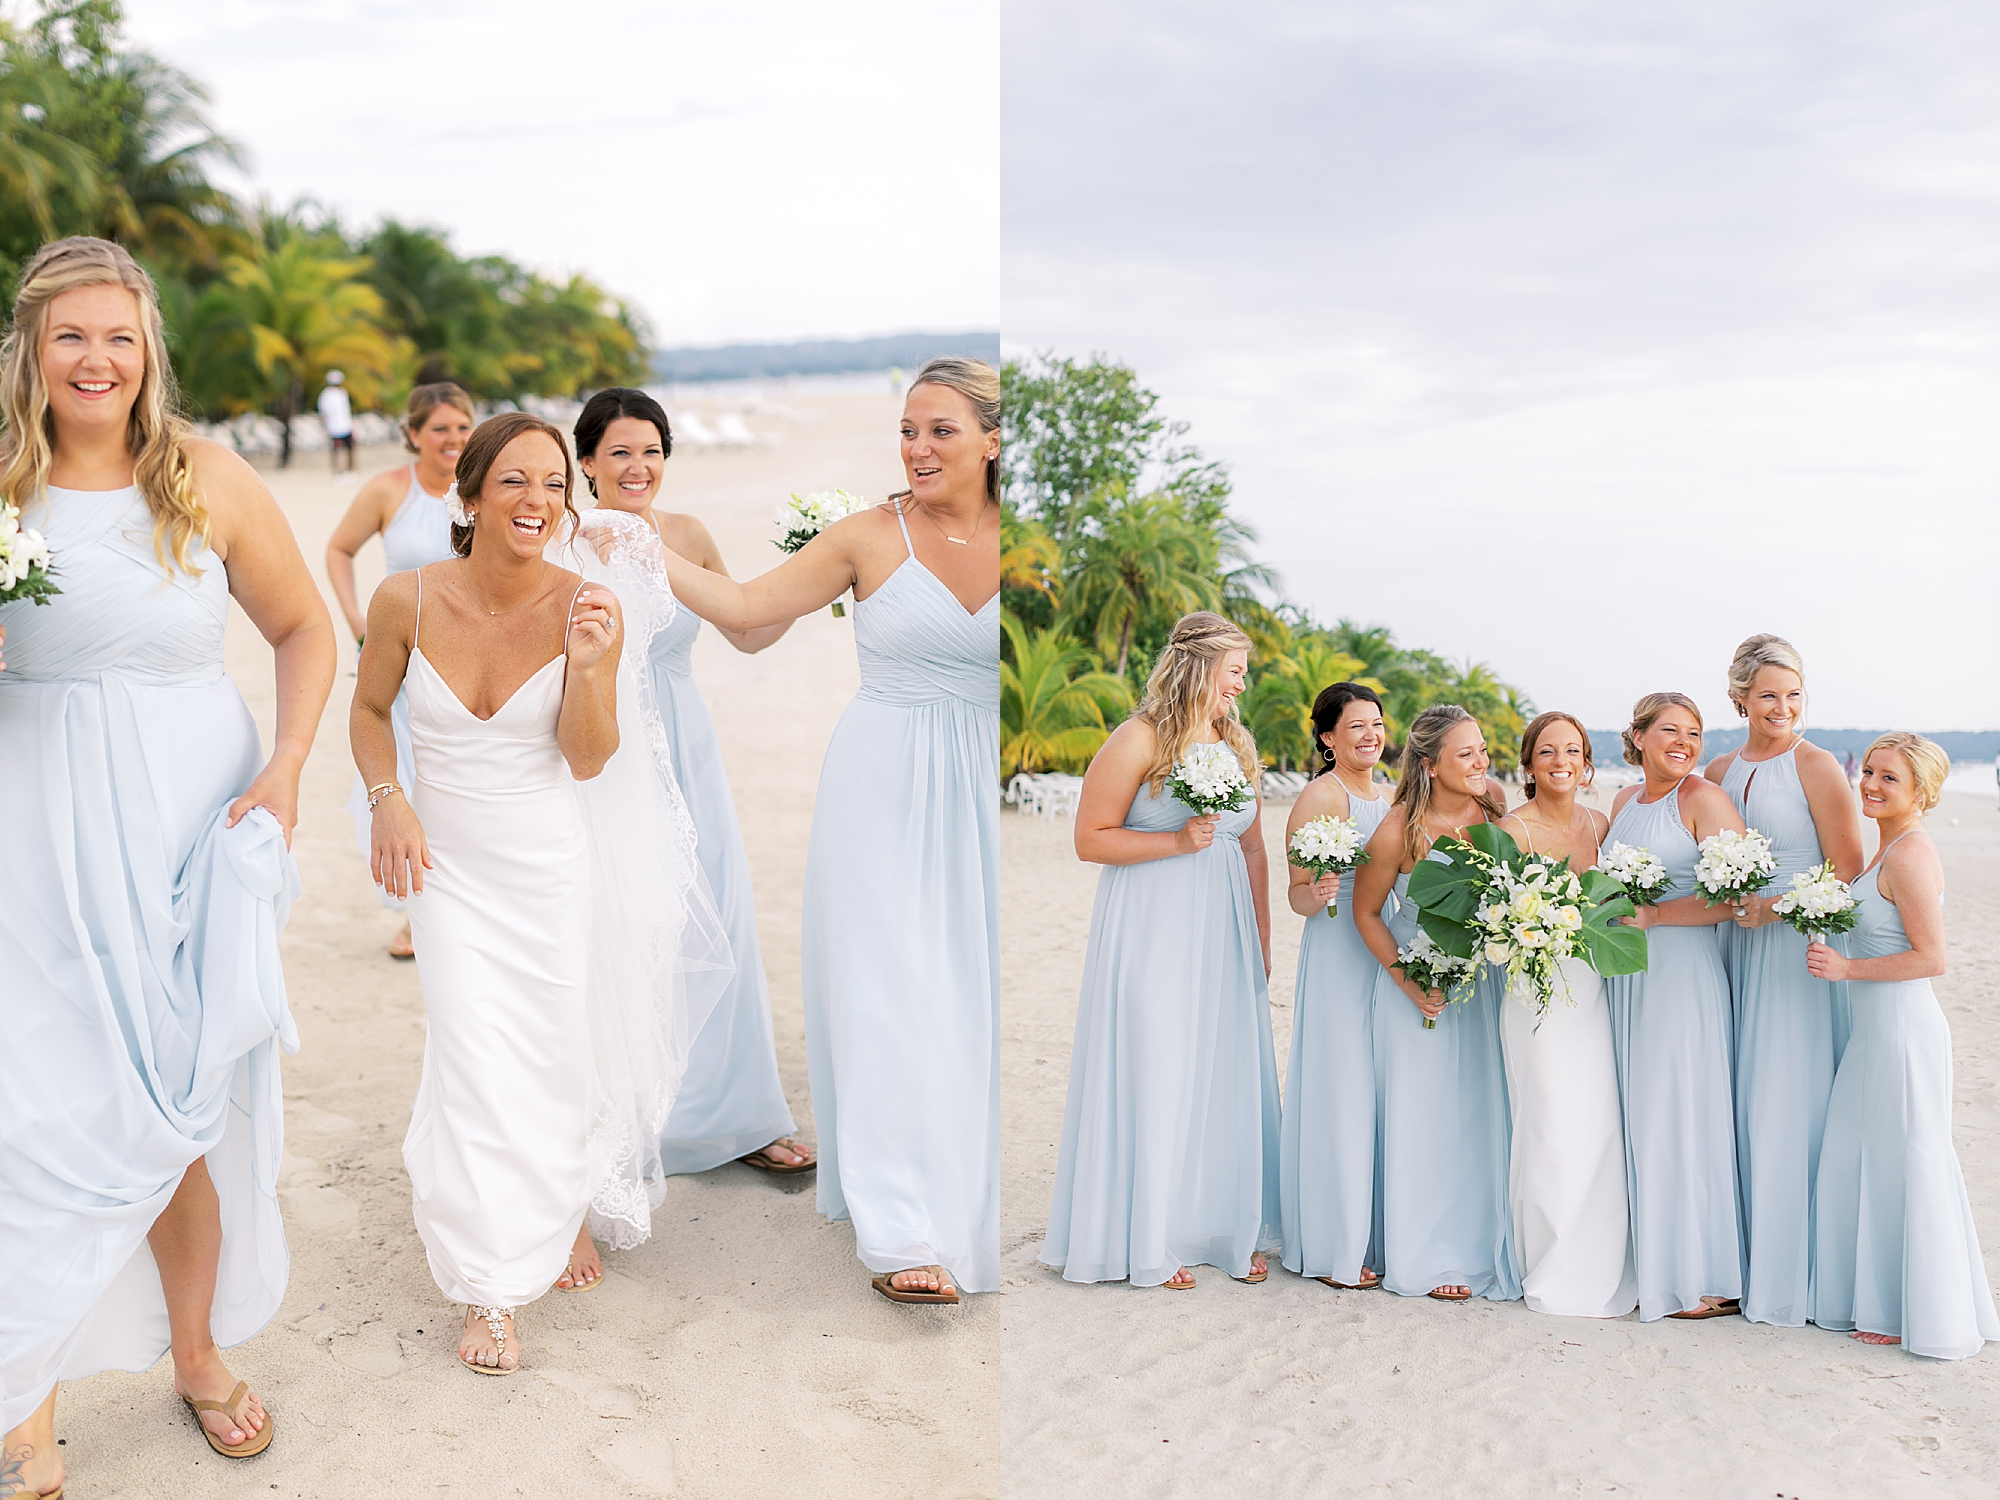 Negril Jamaica Film Destination Wedding Photography by Magdalena Studios 0041